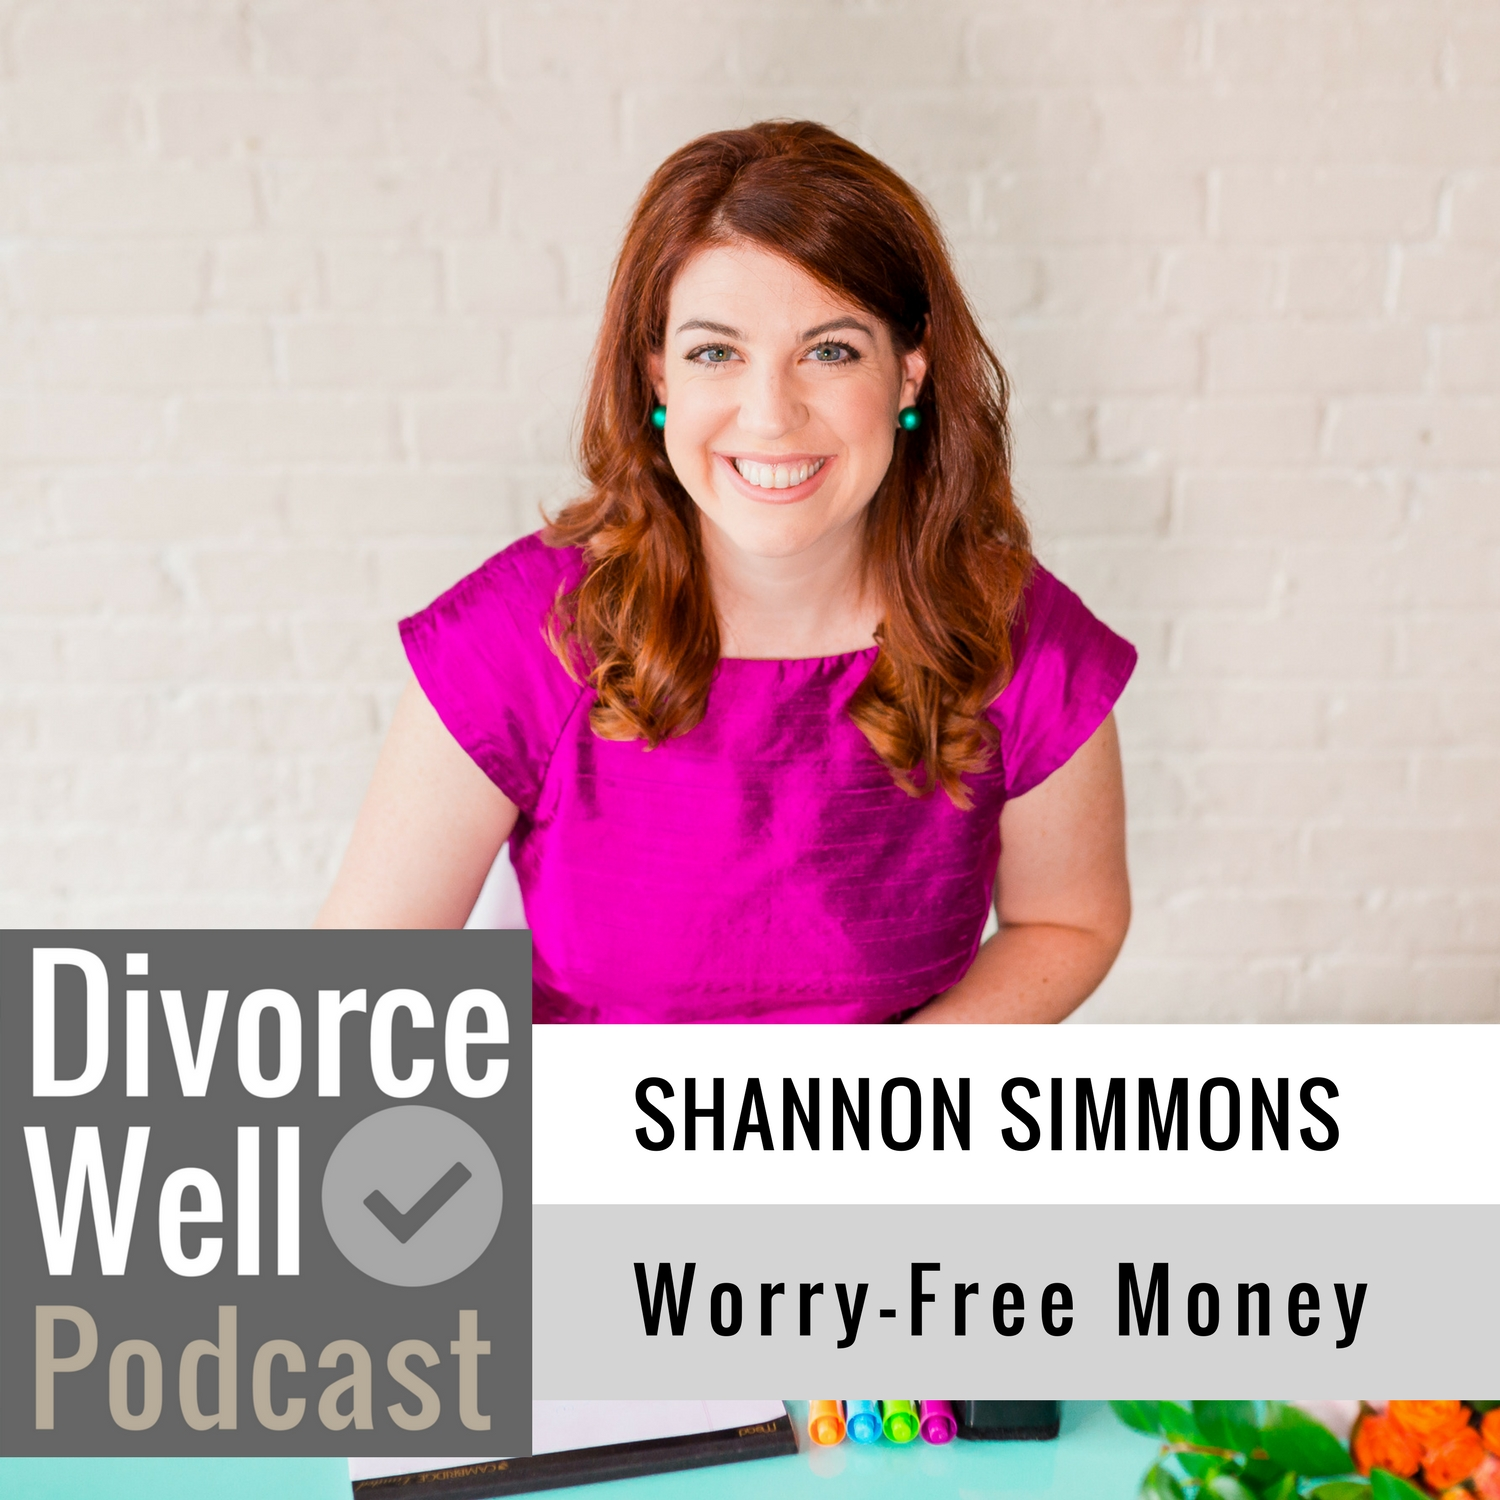 Shannon Lee Simmons on the Divorce Well Podcast about Worry-Free Money and financial decisions